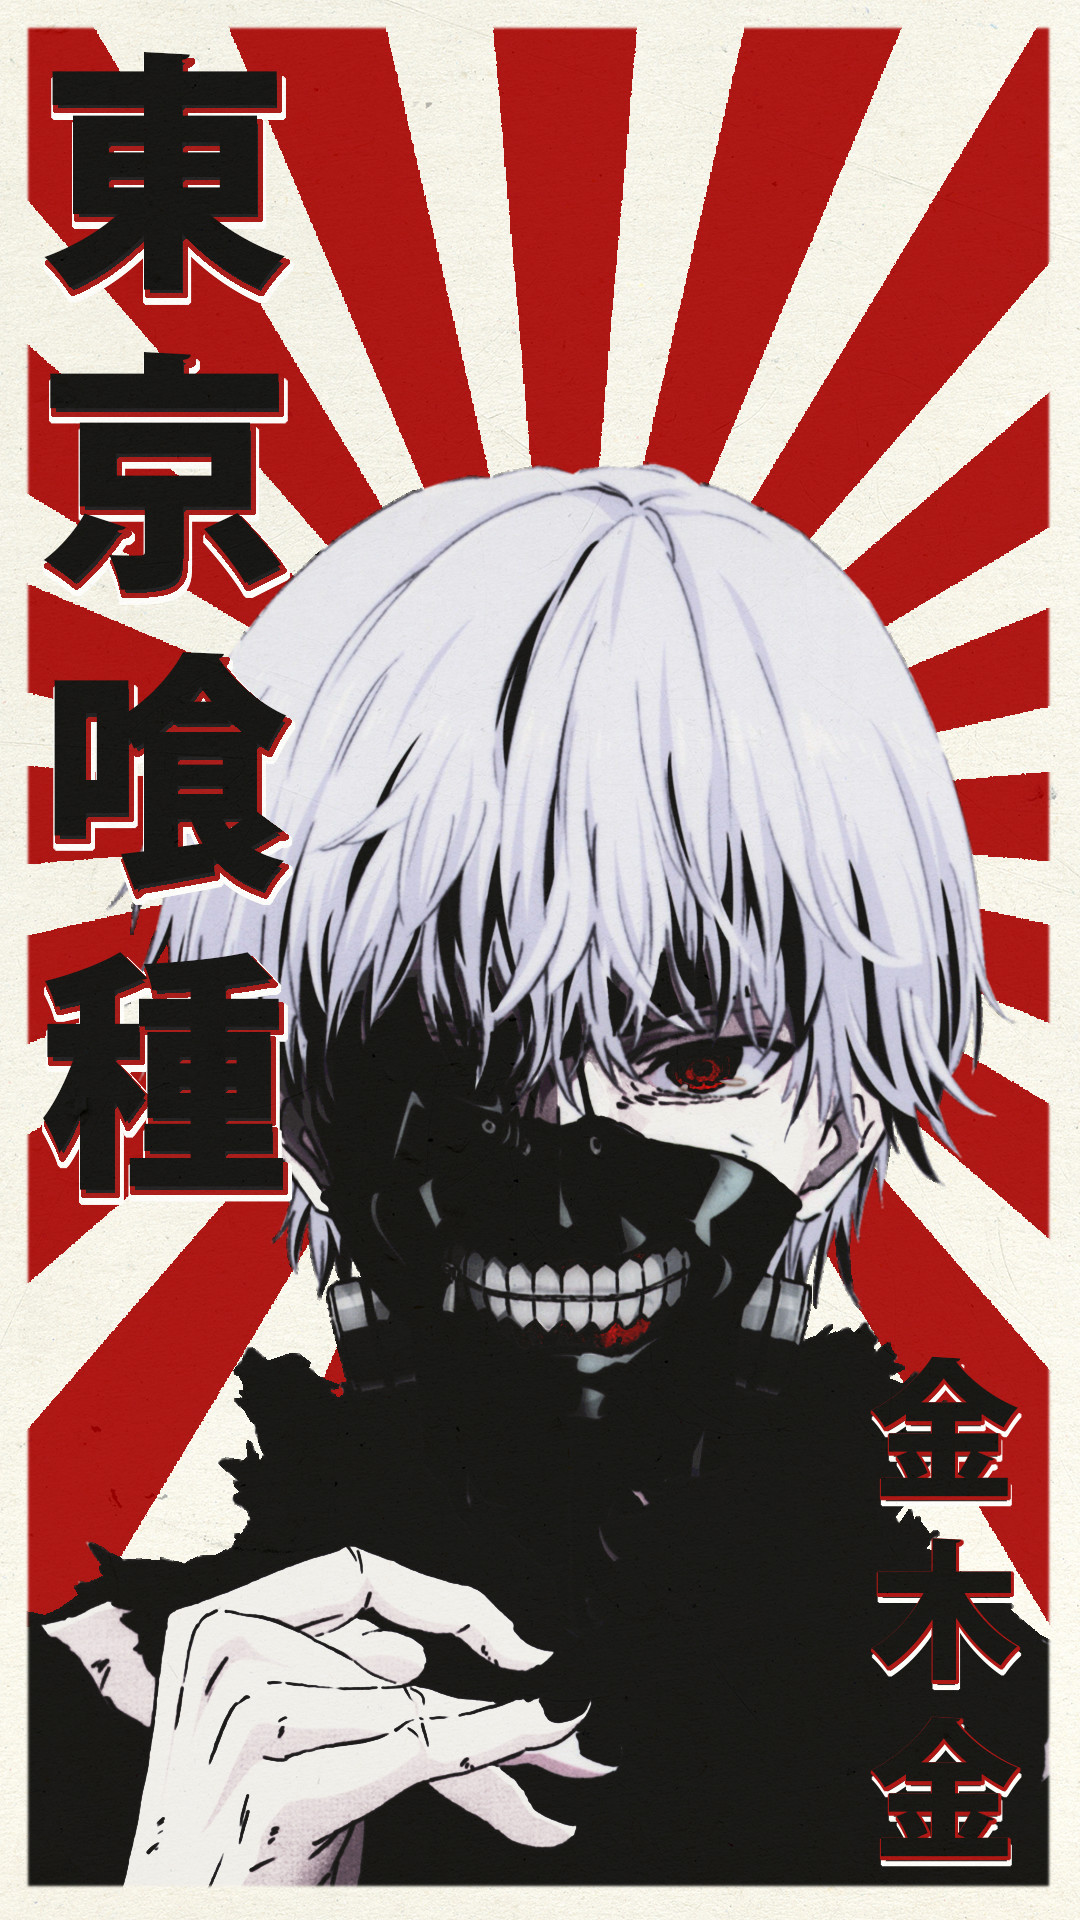 See more ideas about tokyo ghoul, ghoul, tokyo ghoul wallpapers. Tokyo Ghoul Kaneki Wallpaper (73+ images)